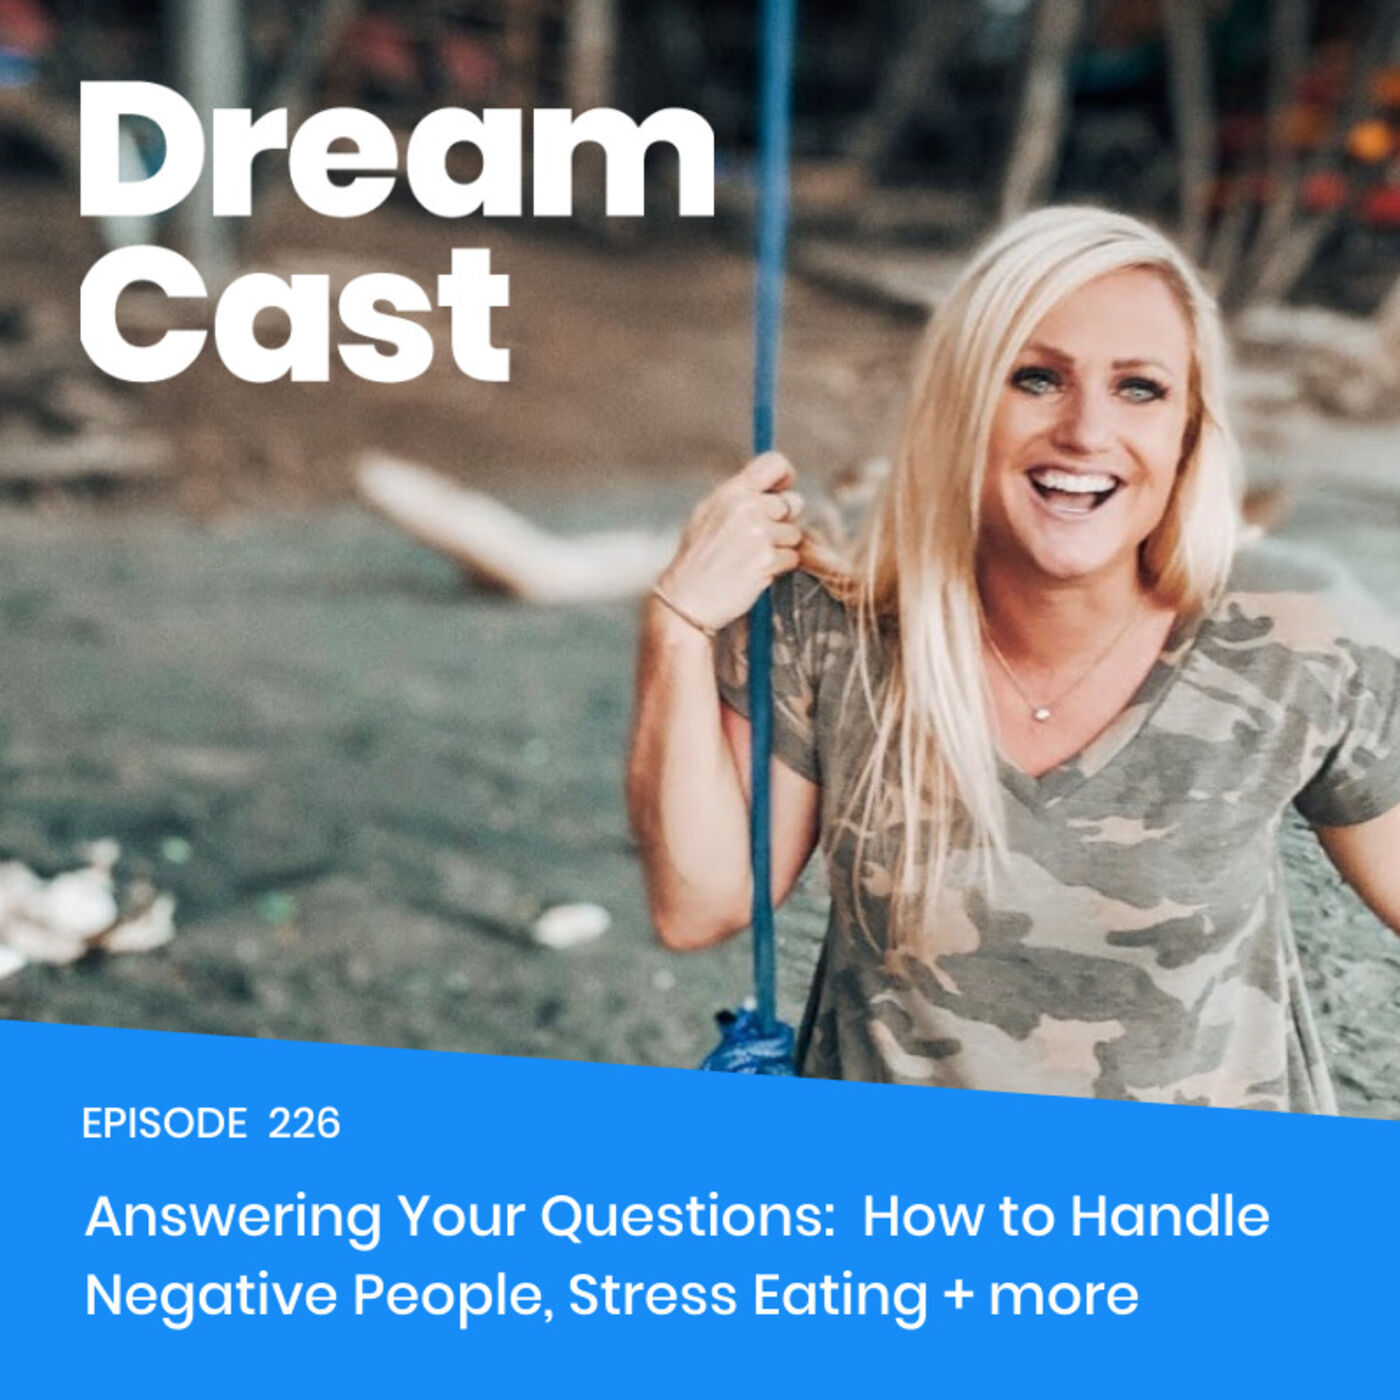 Ep: 229 Answering Your Questions: How to Handle Negative People and Stress Eating + more